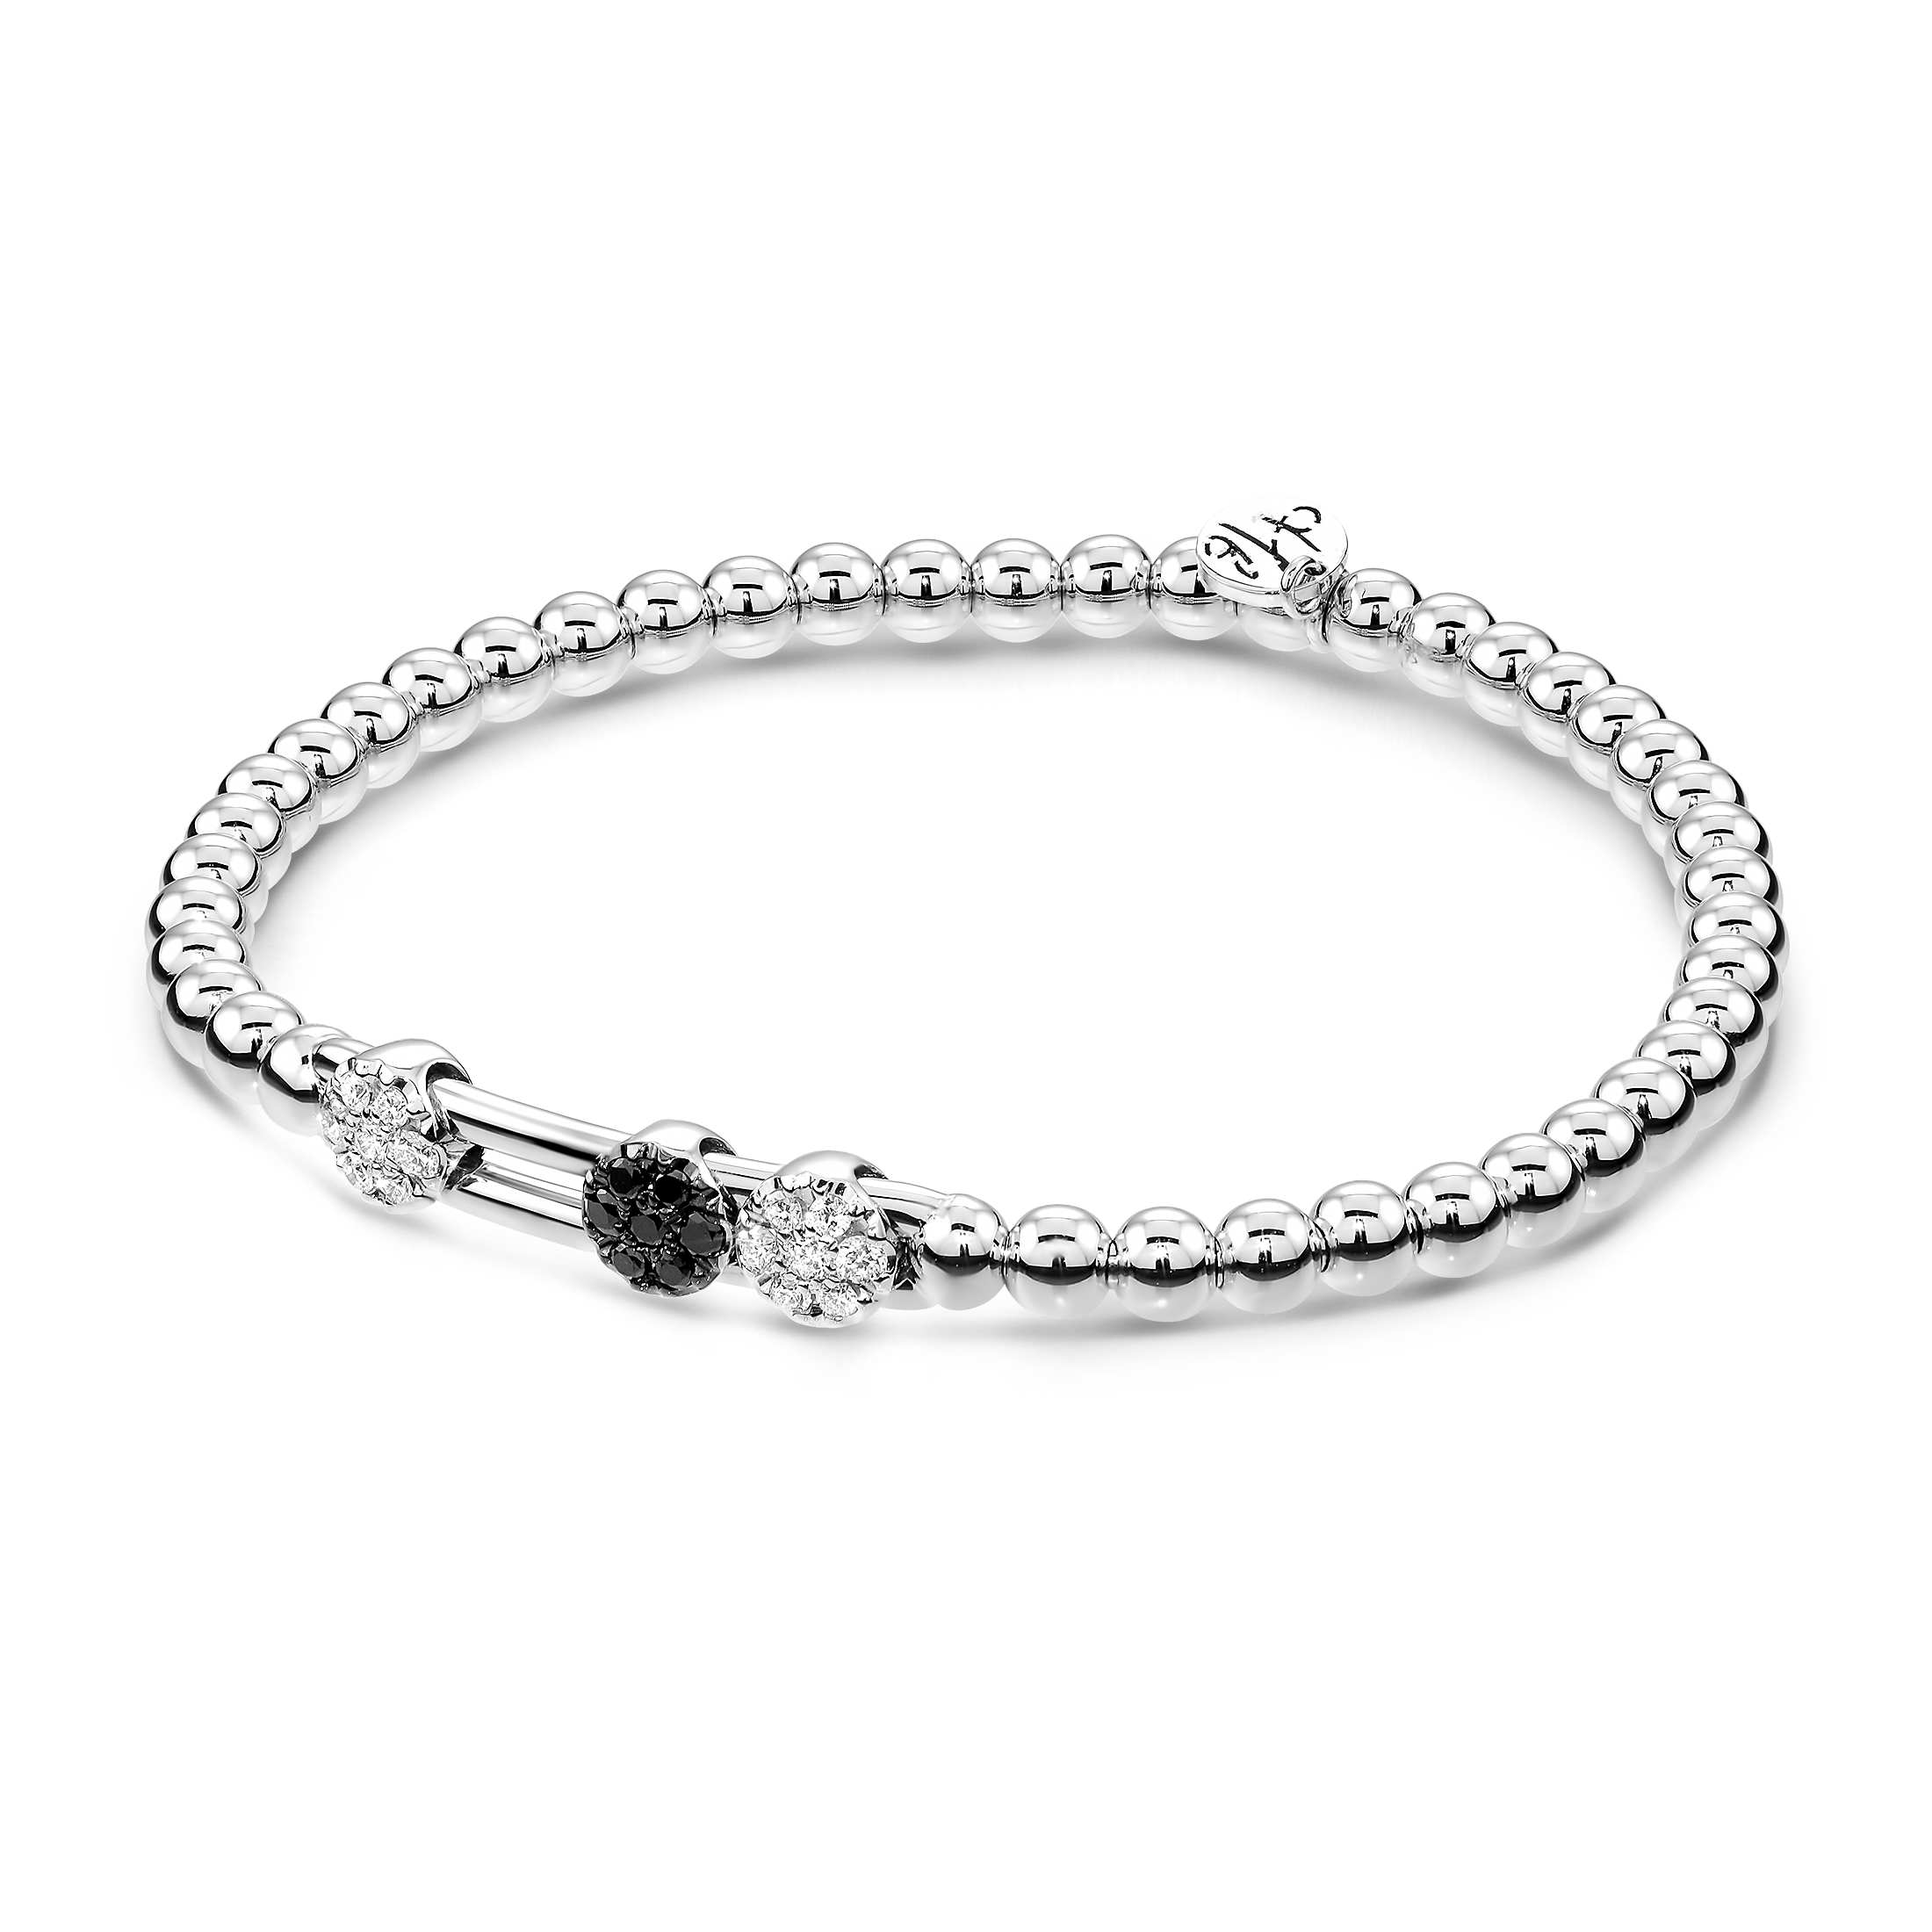 weave jewelry pure braided cuff singaraja bracelet bracelets novica at silver from gallery sterling